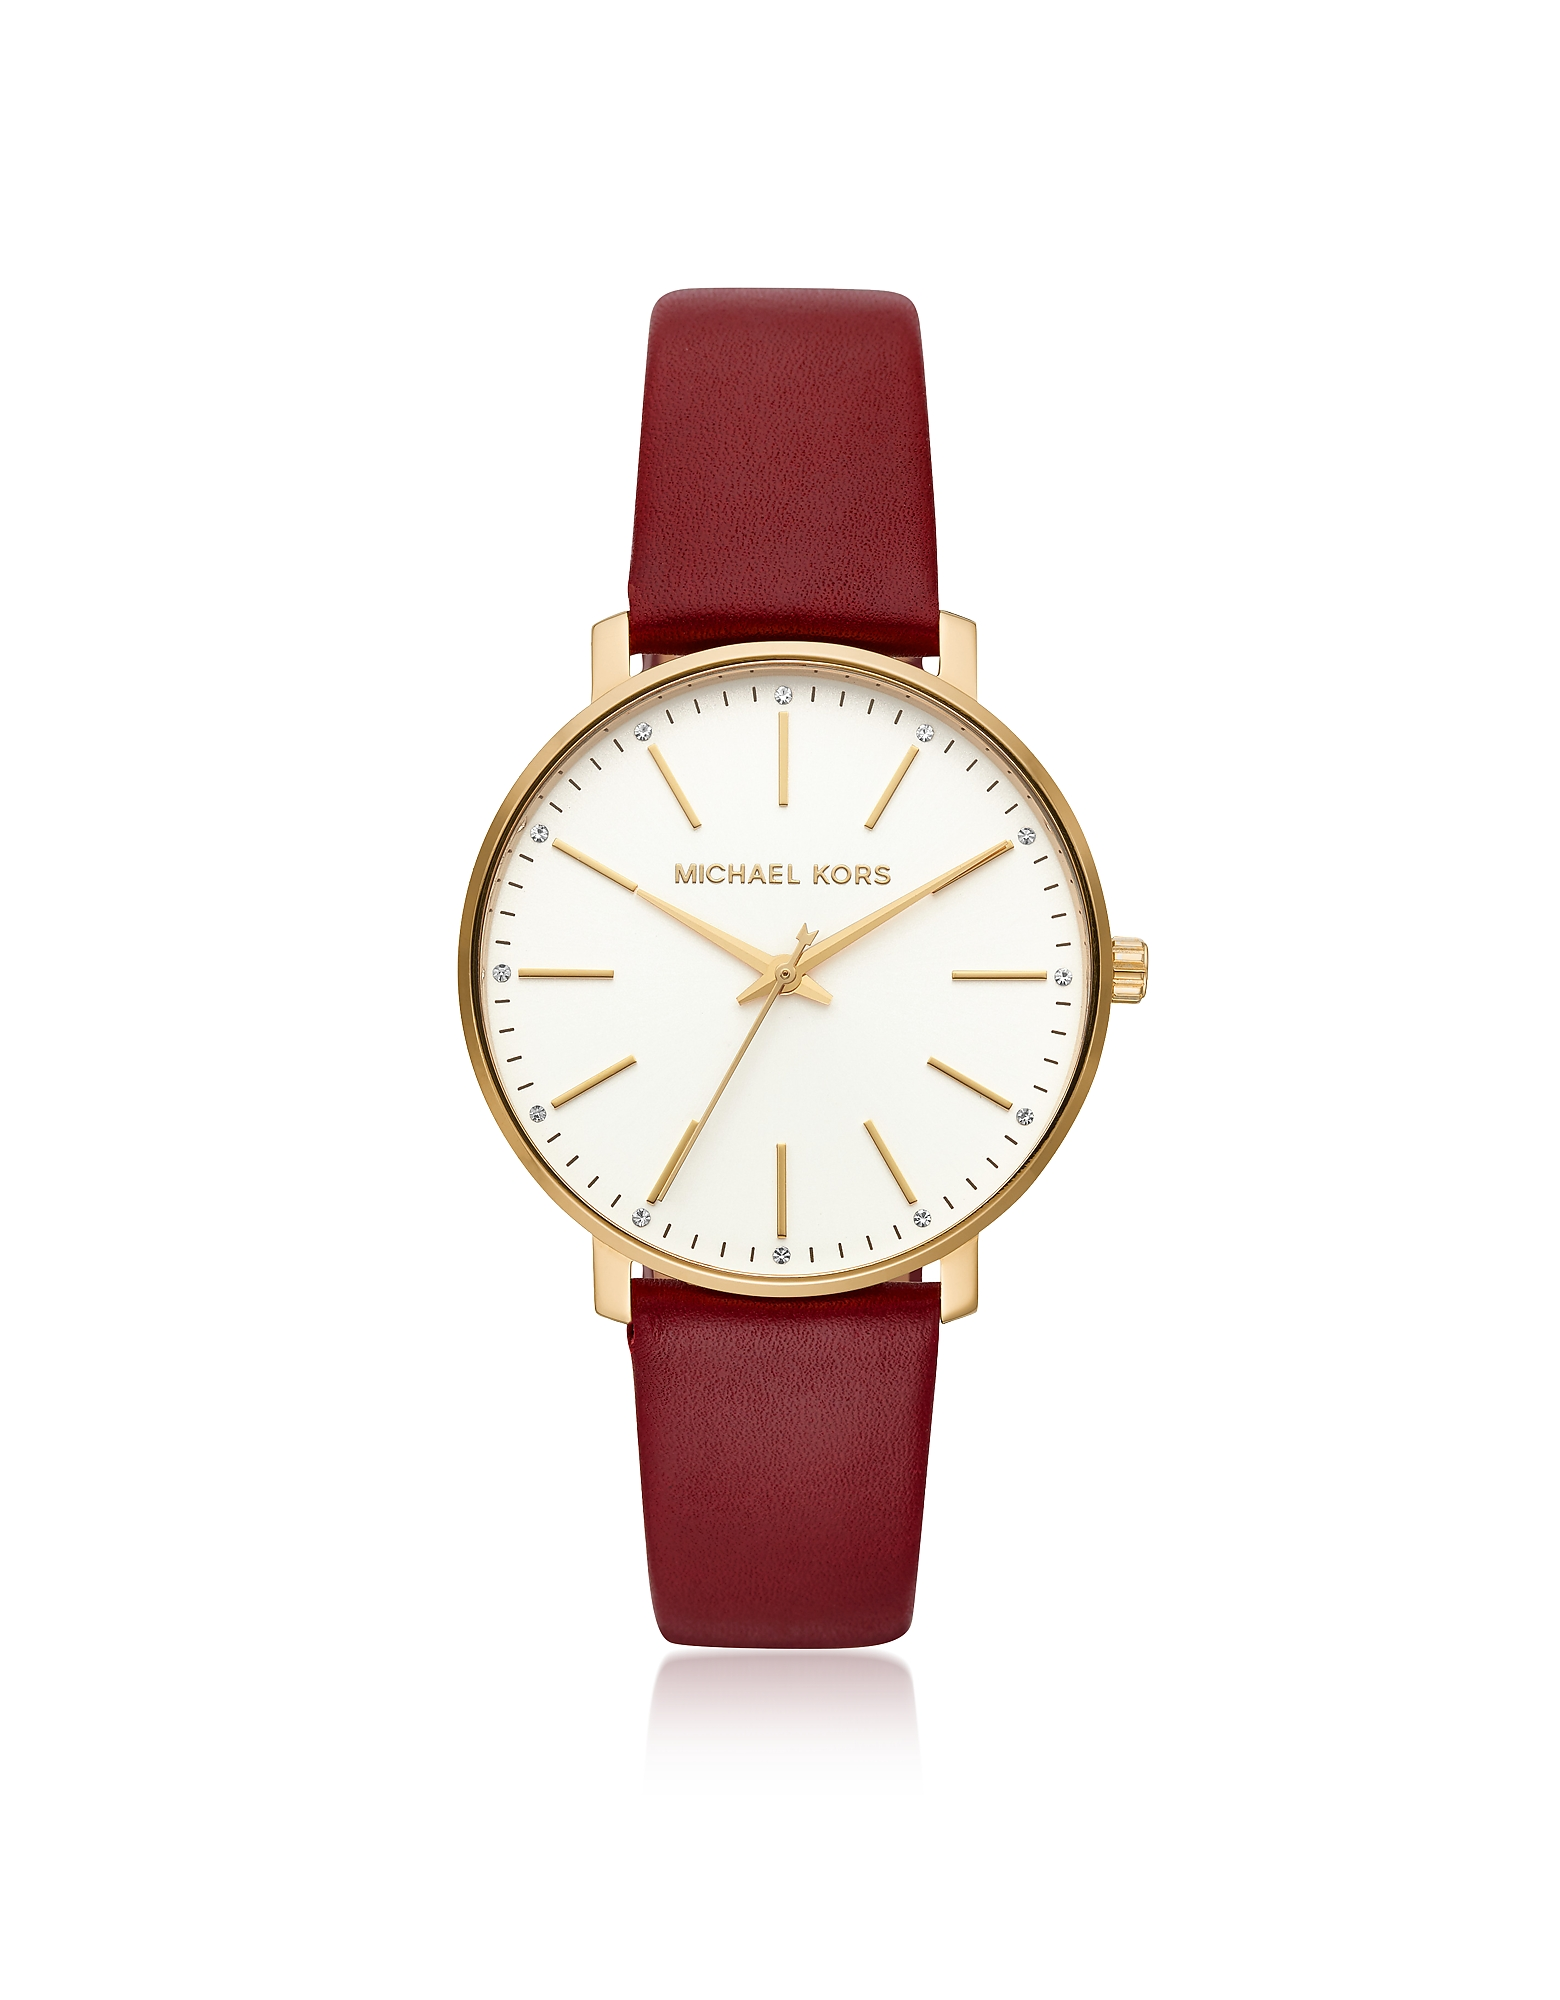 Michael Kors Women's Watches, Pyper Gold Tone and Maroon Leather Watch